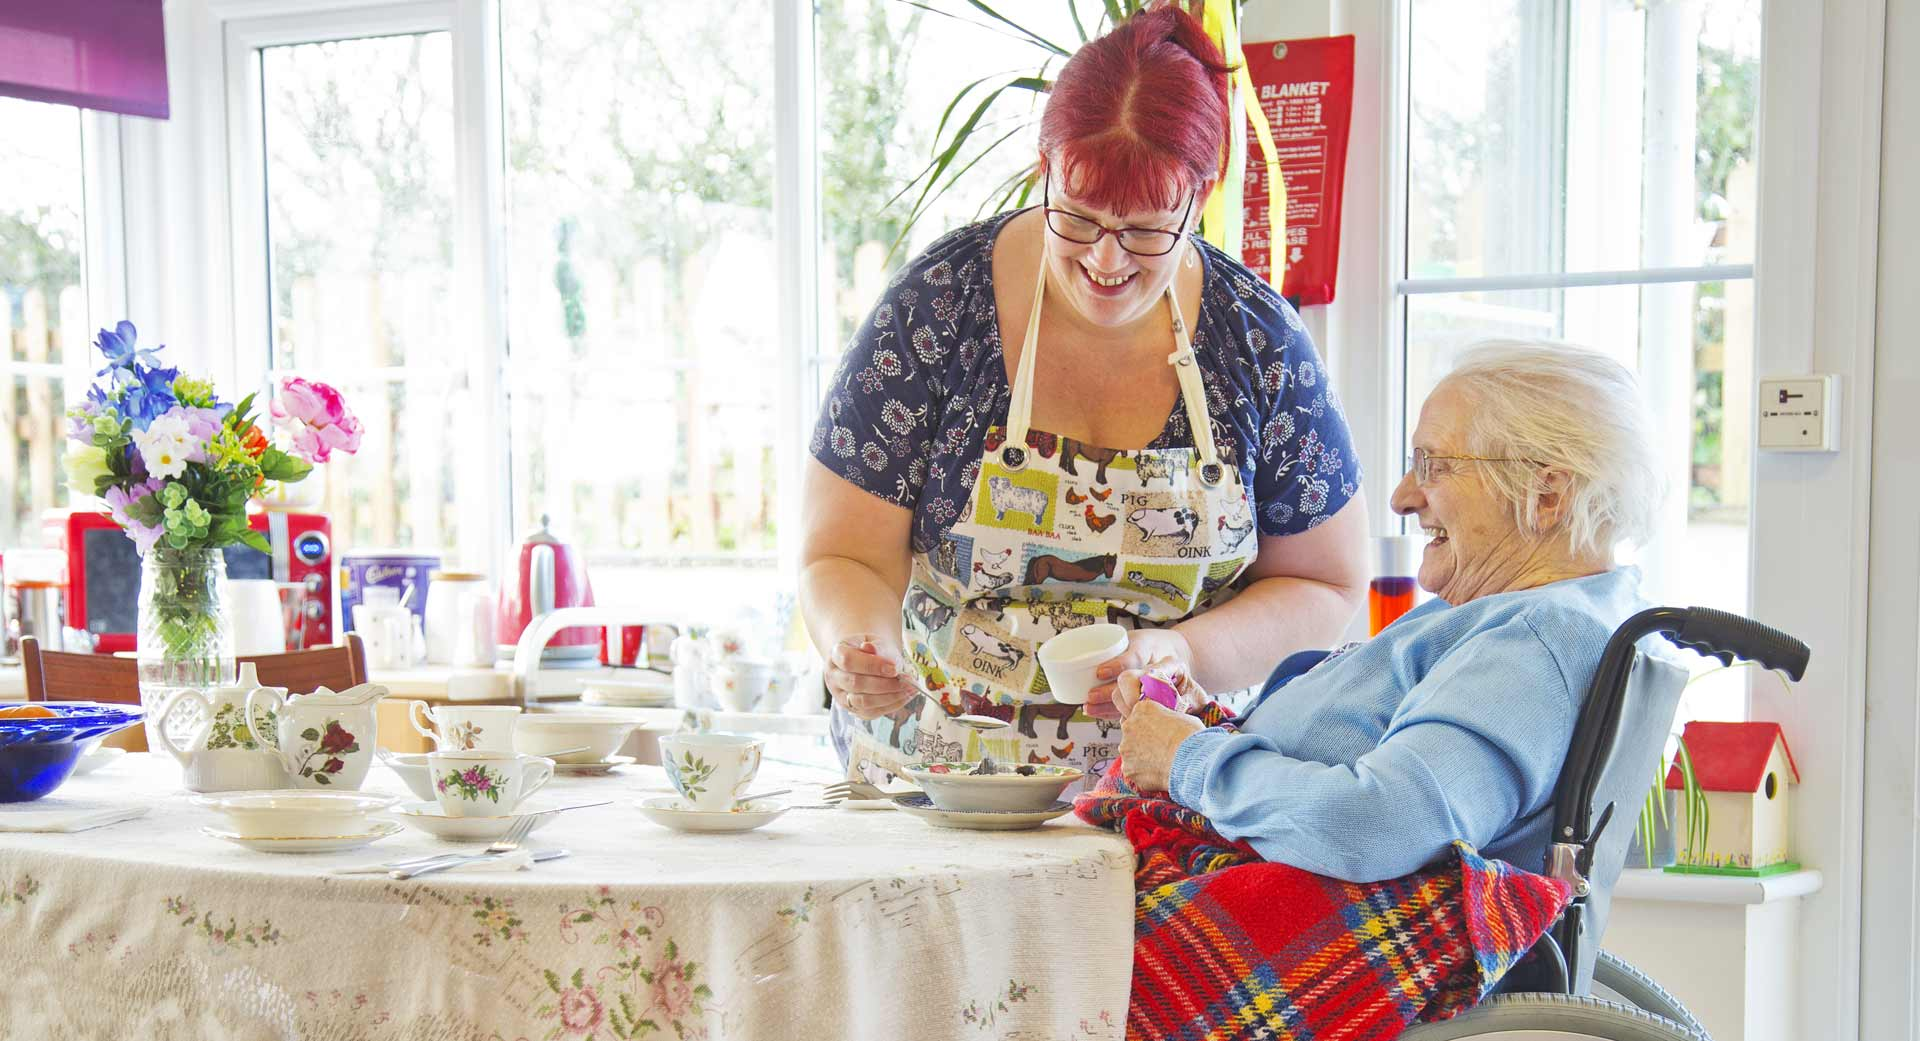 Staff and dementia care home resident baking together